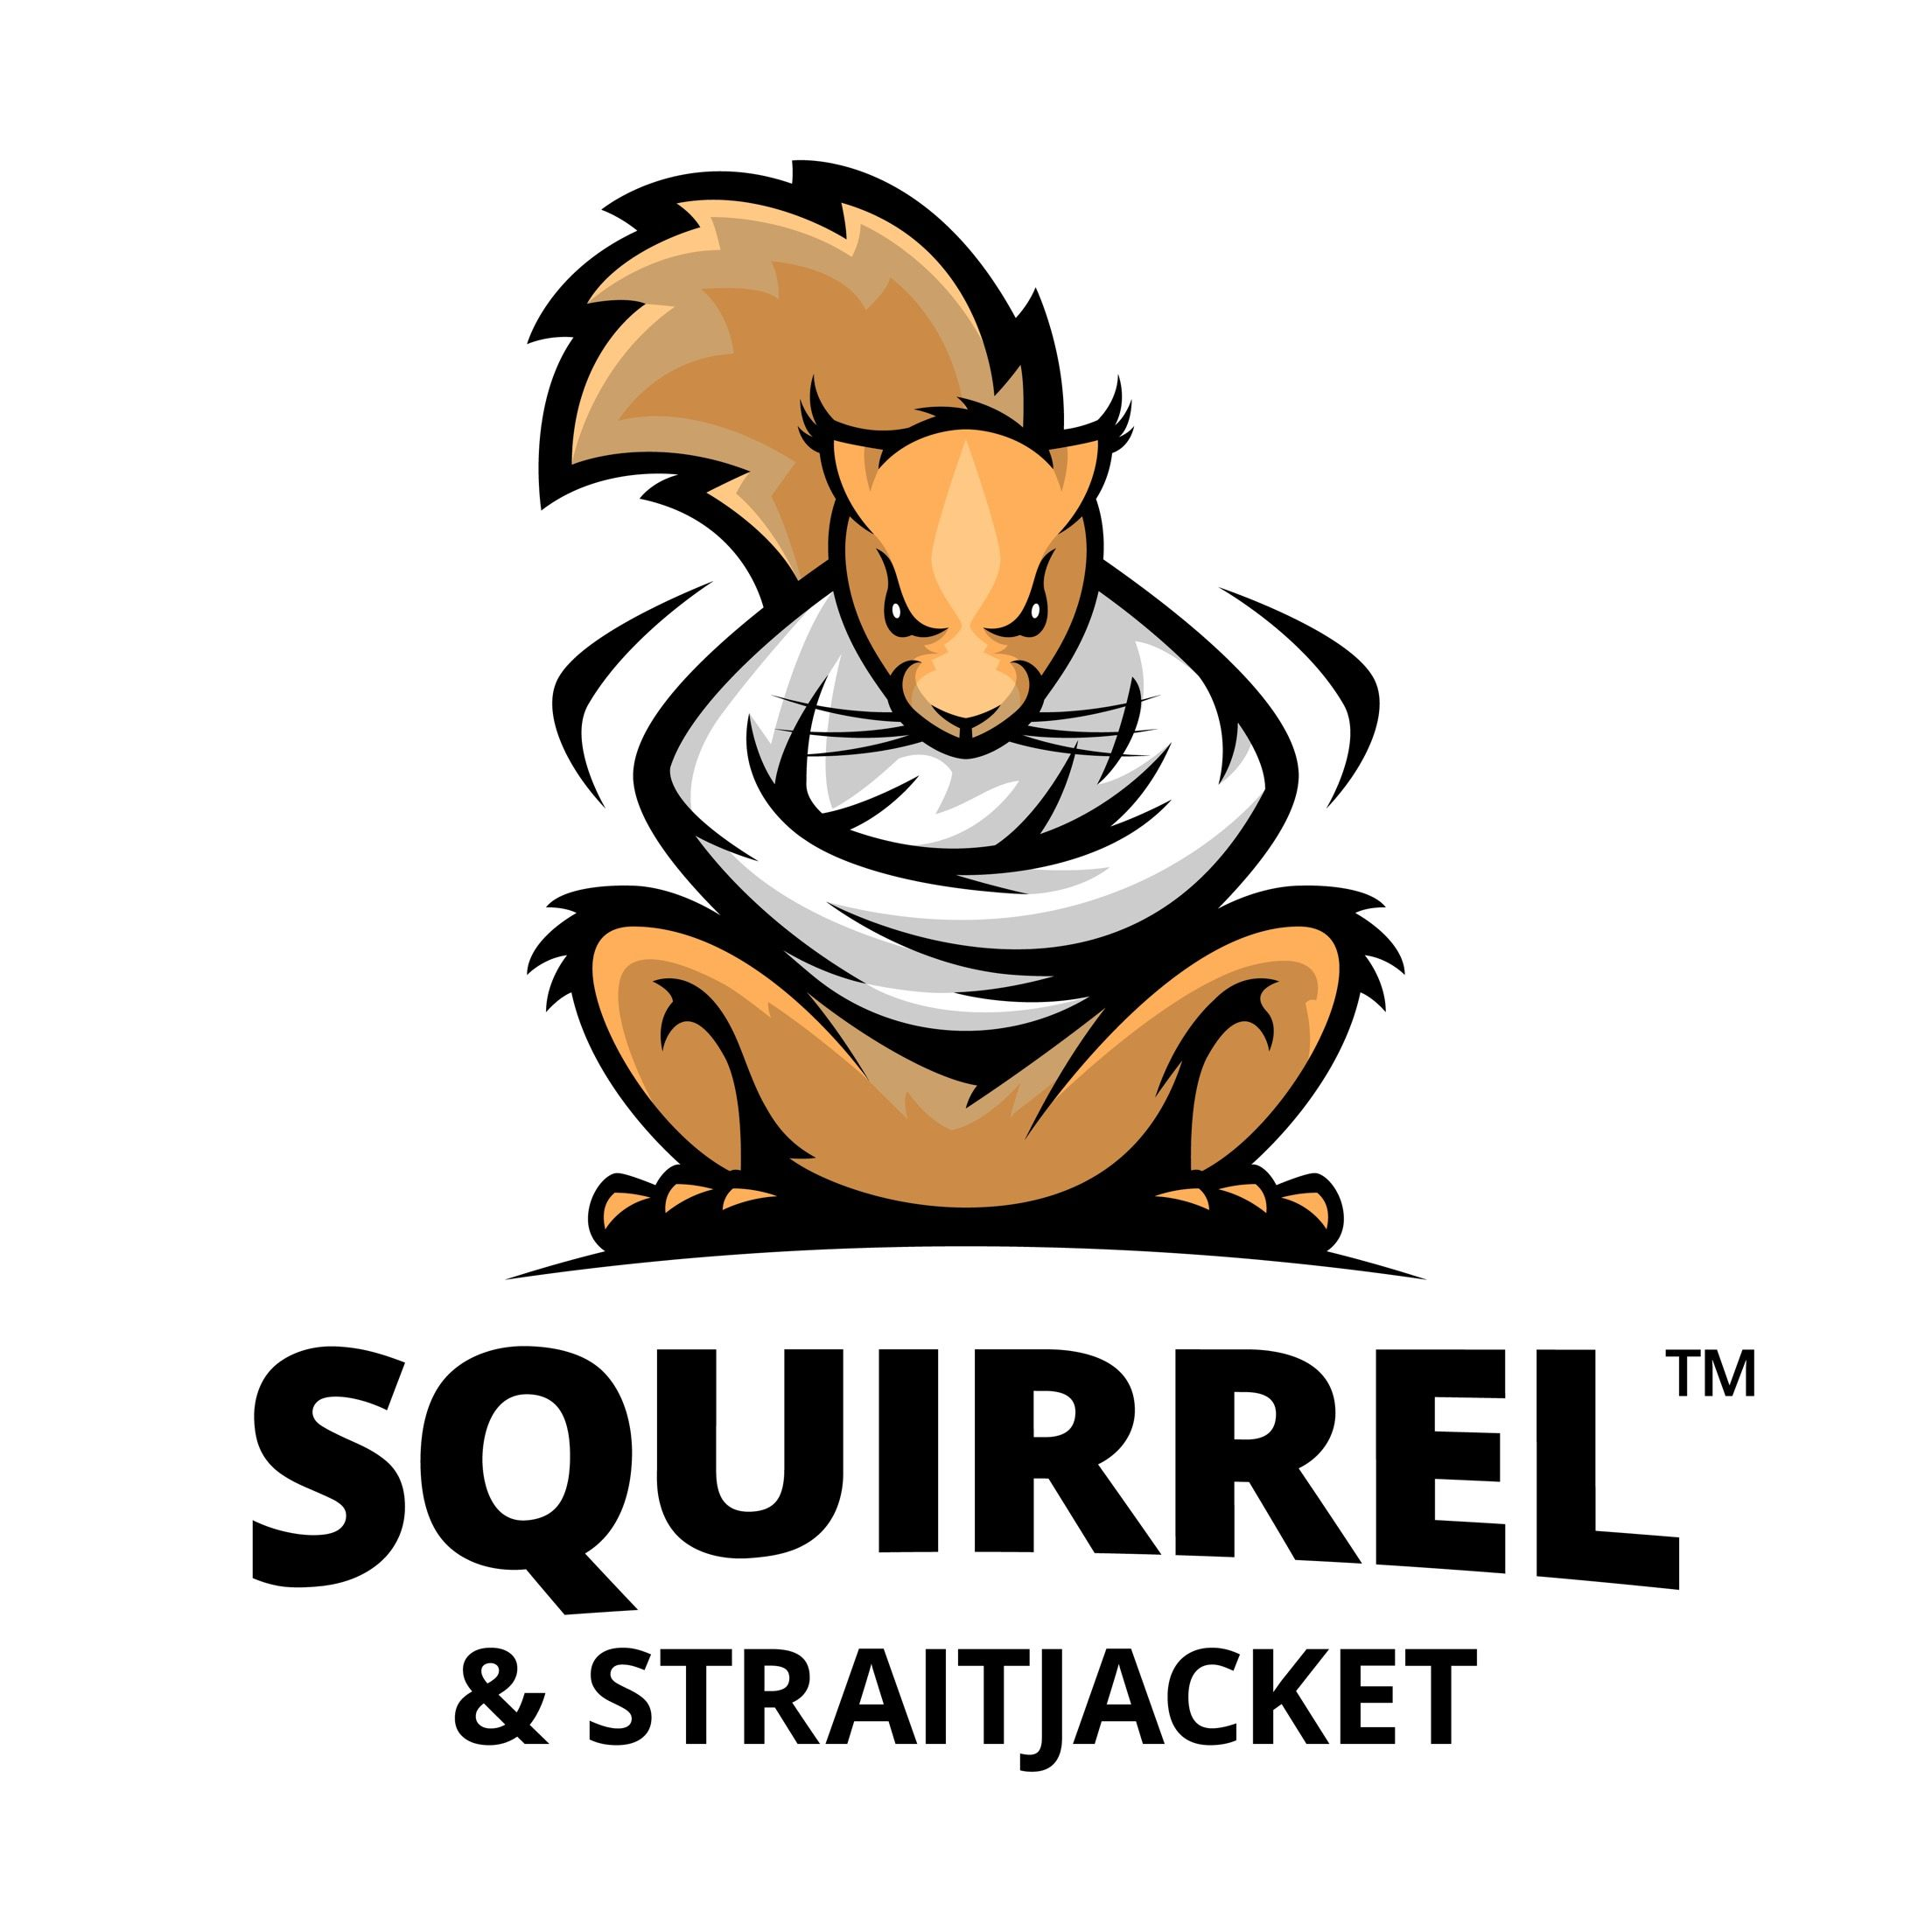 Squirrel s apparel illustrator